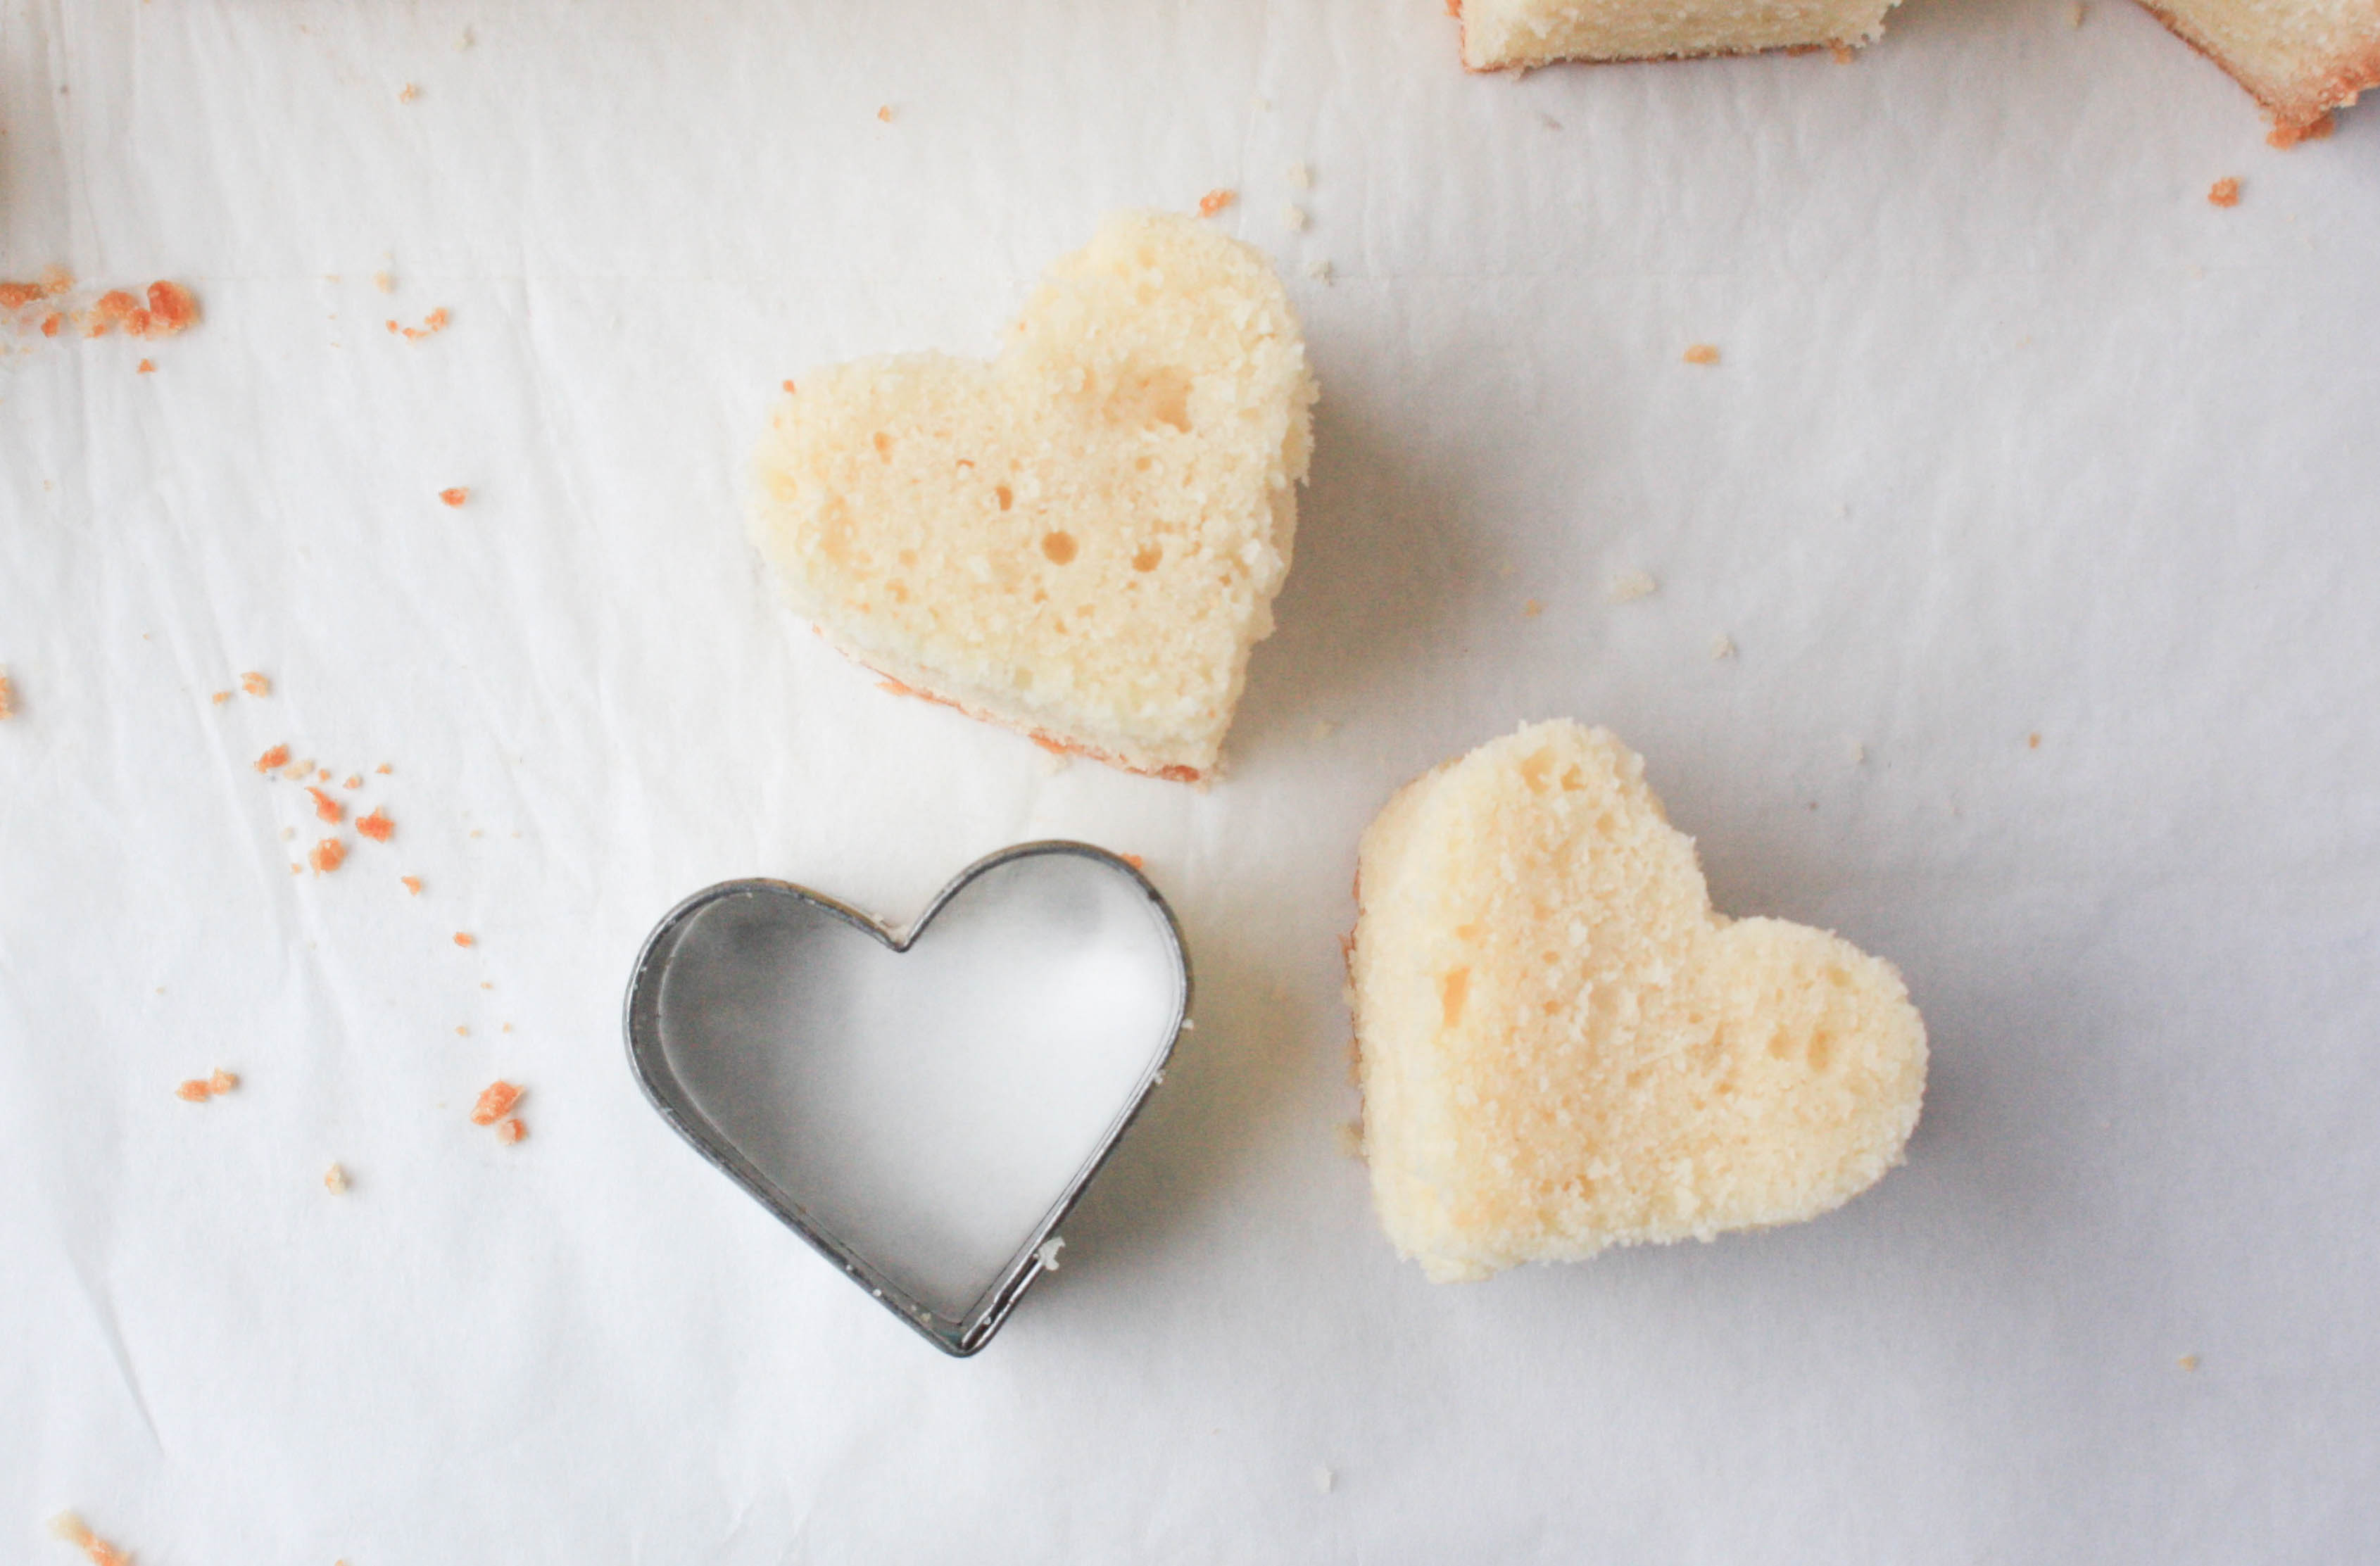 Cutting petit fours | Erin Gardner